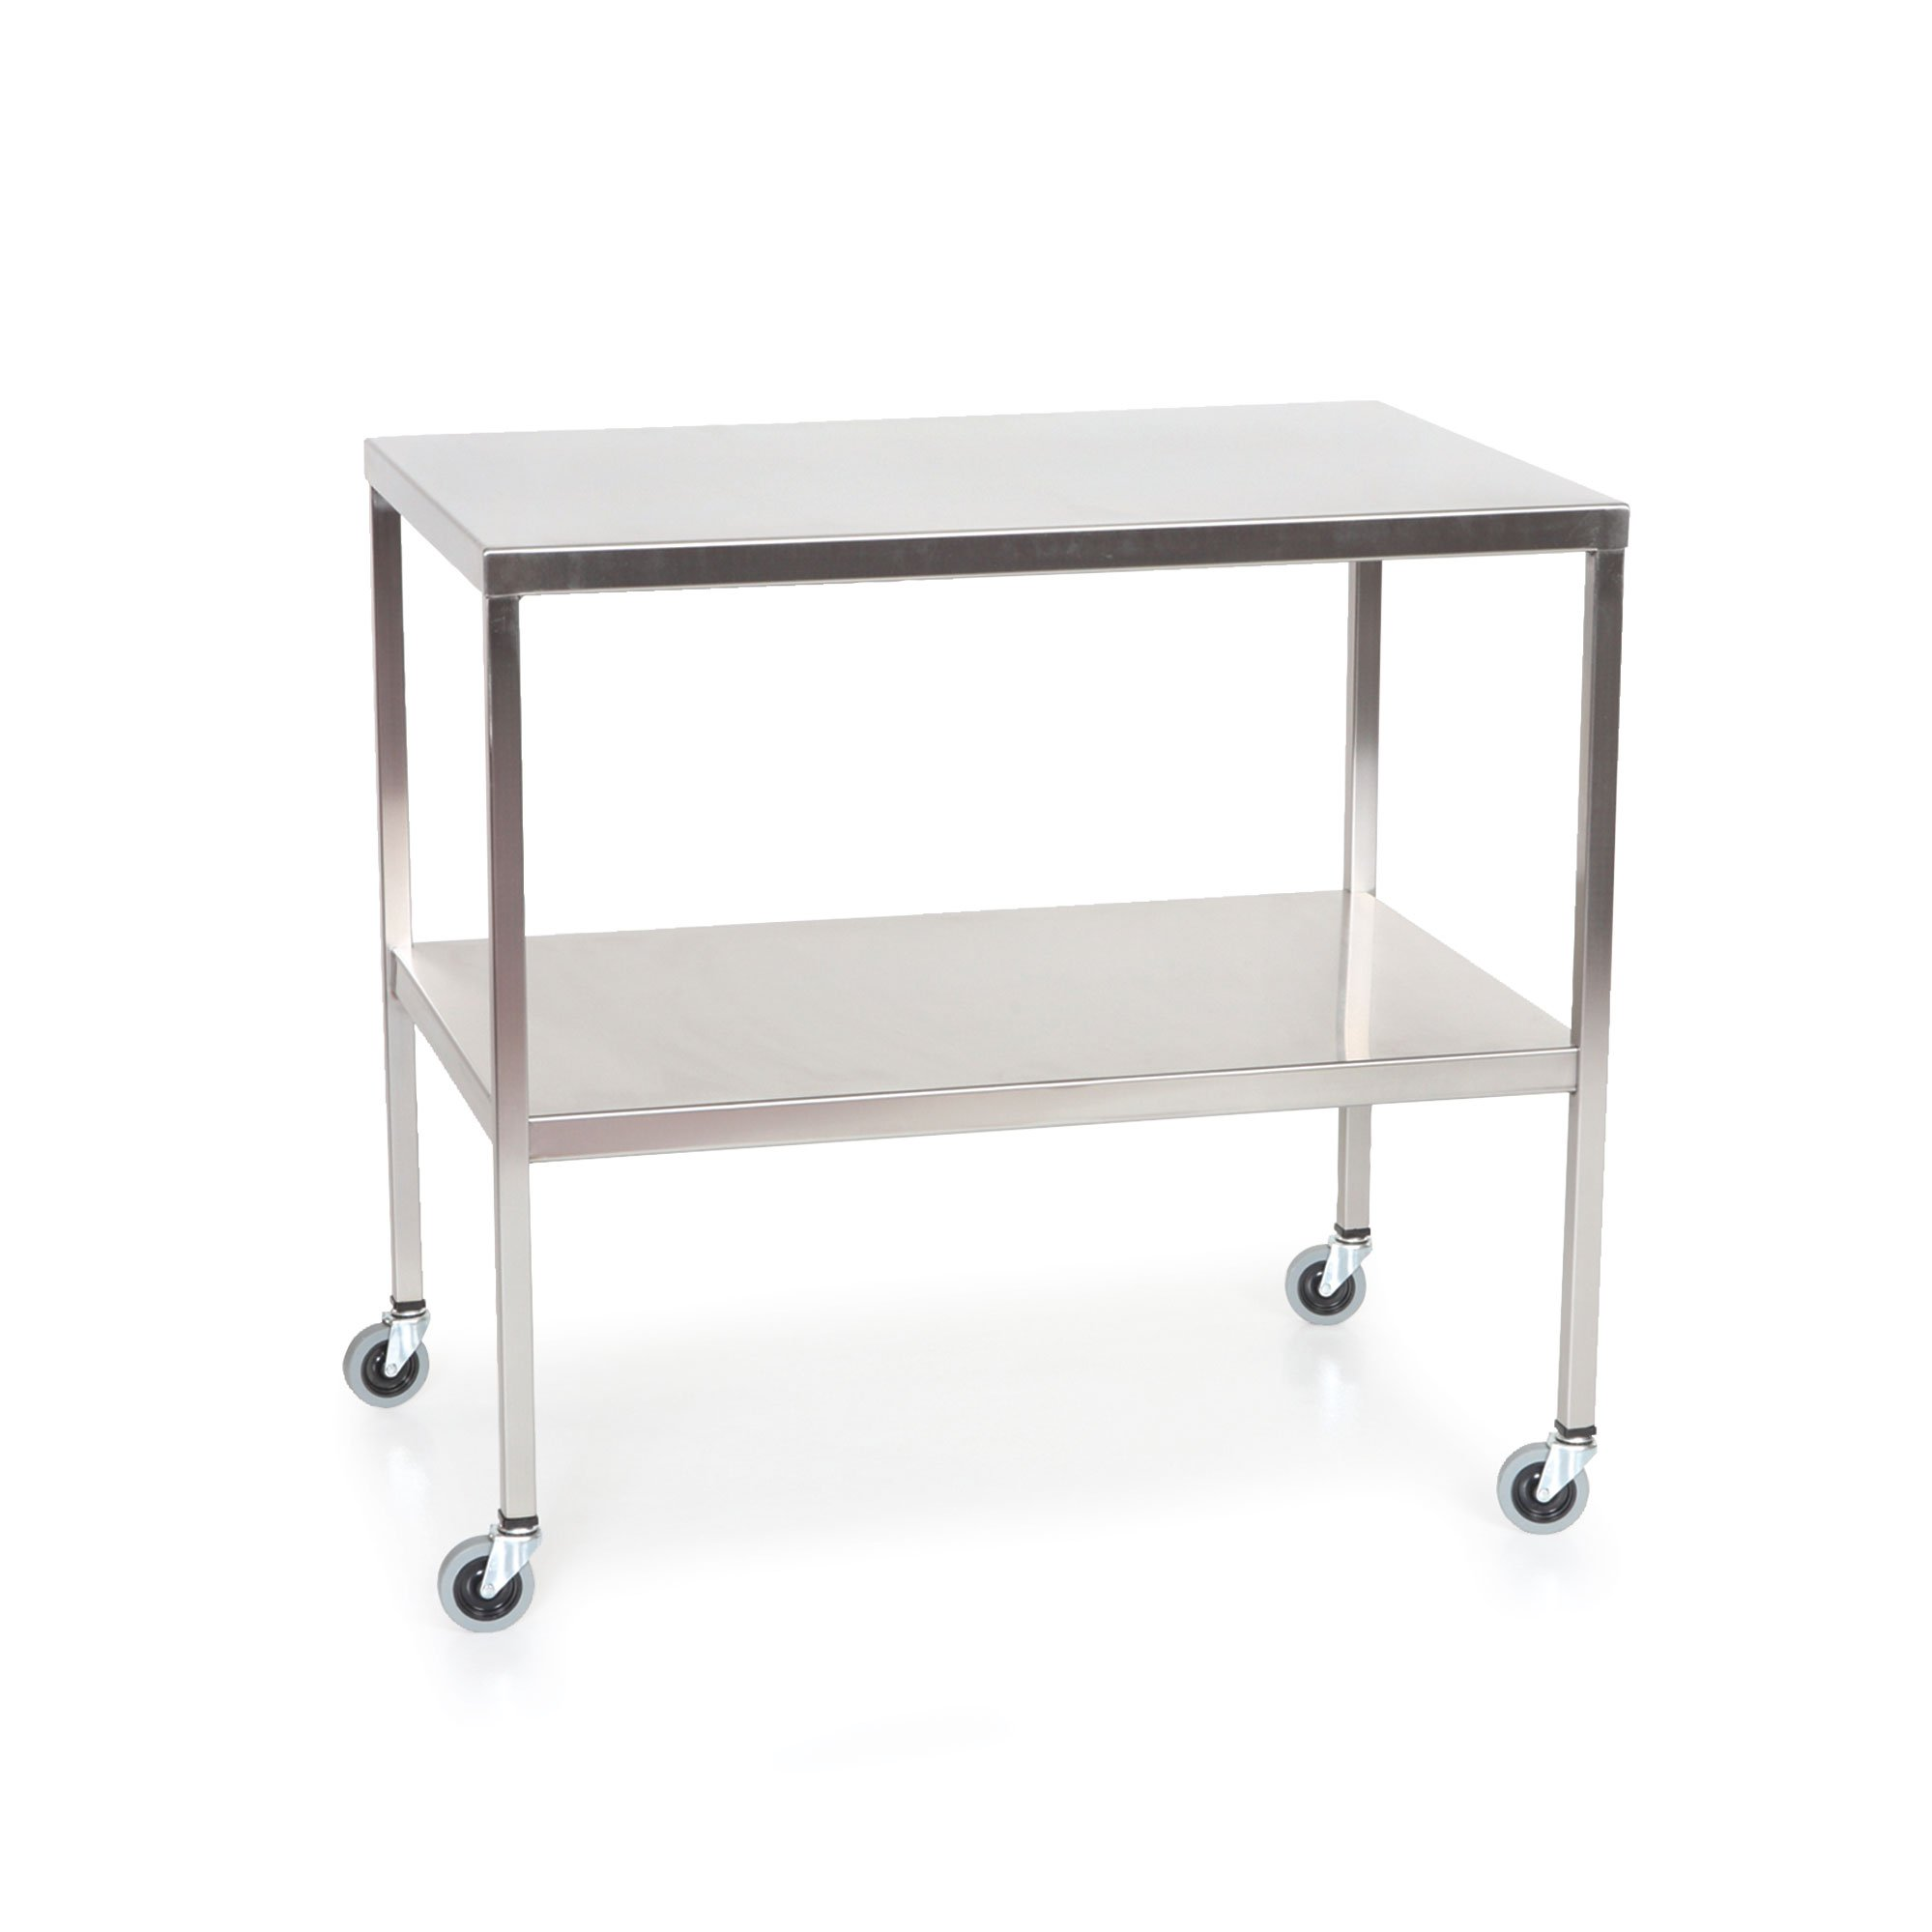 Stainless Steel Instrument Table with Shelf 36''L x 20''W x 34''H